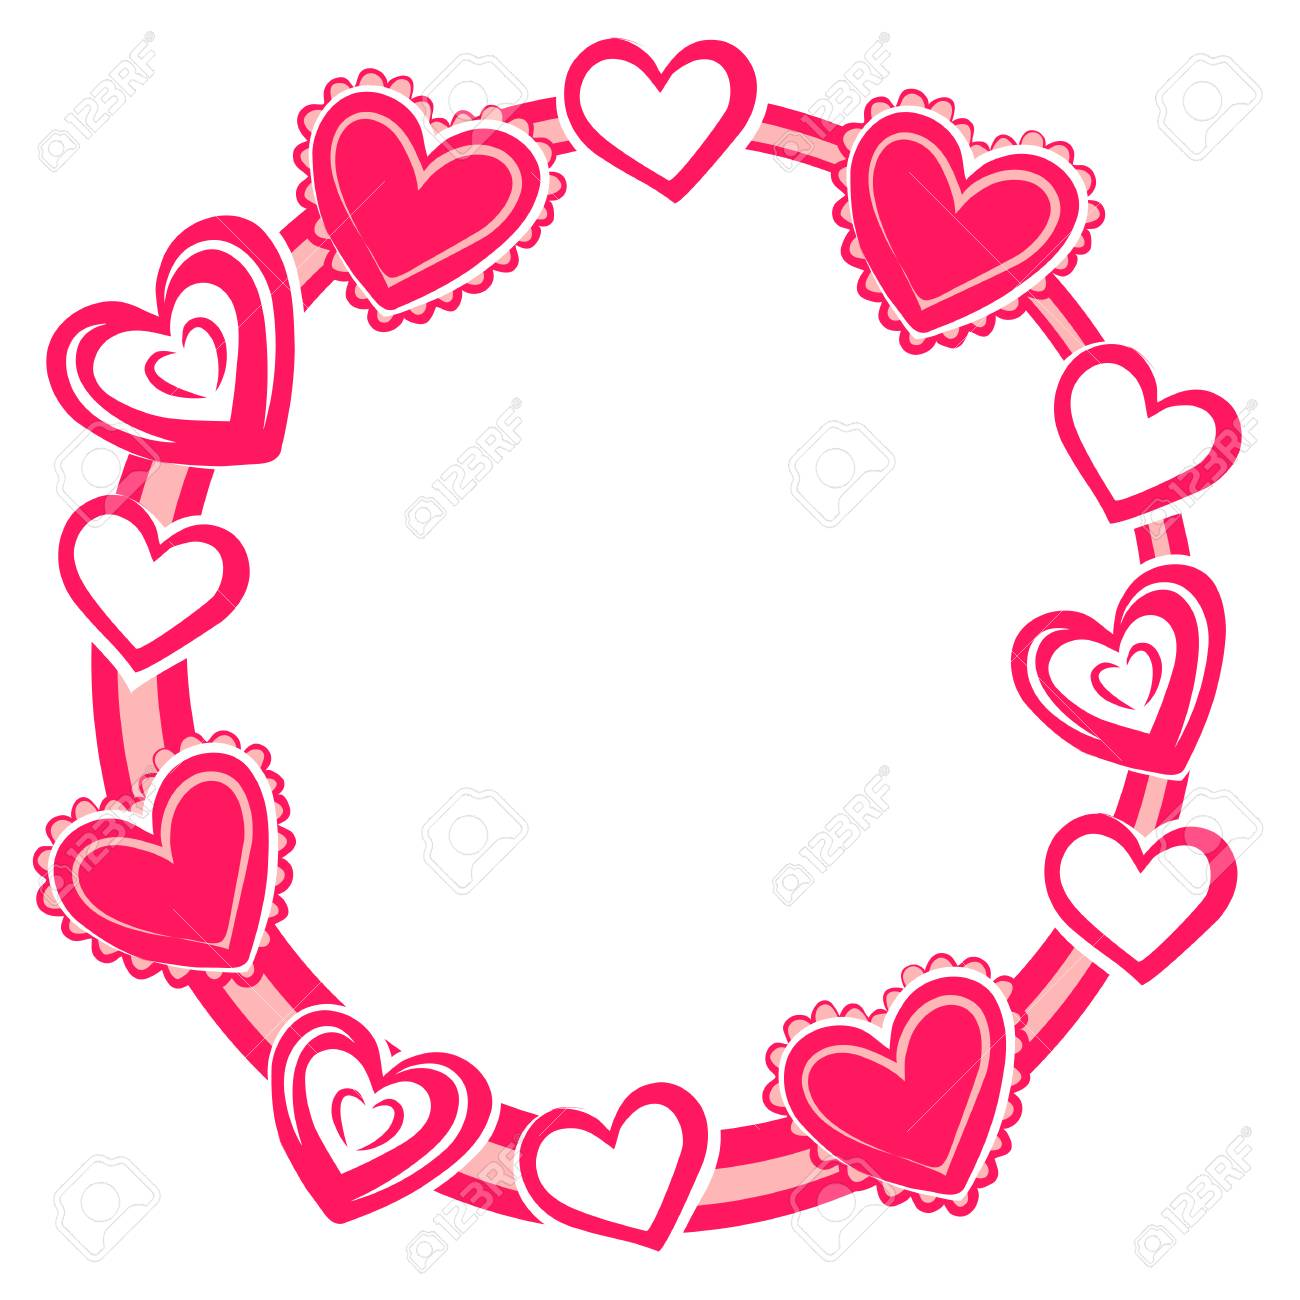 Frame Is Decorated With Hearts For Valentine\'s Day. Vector ...